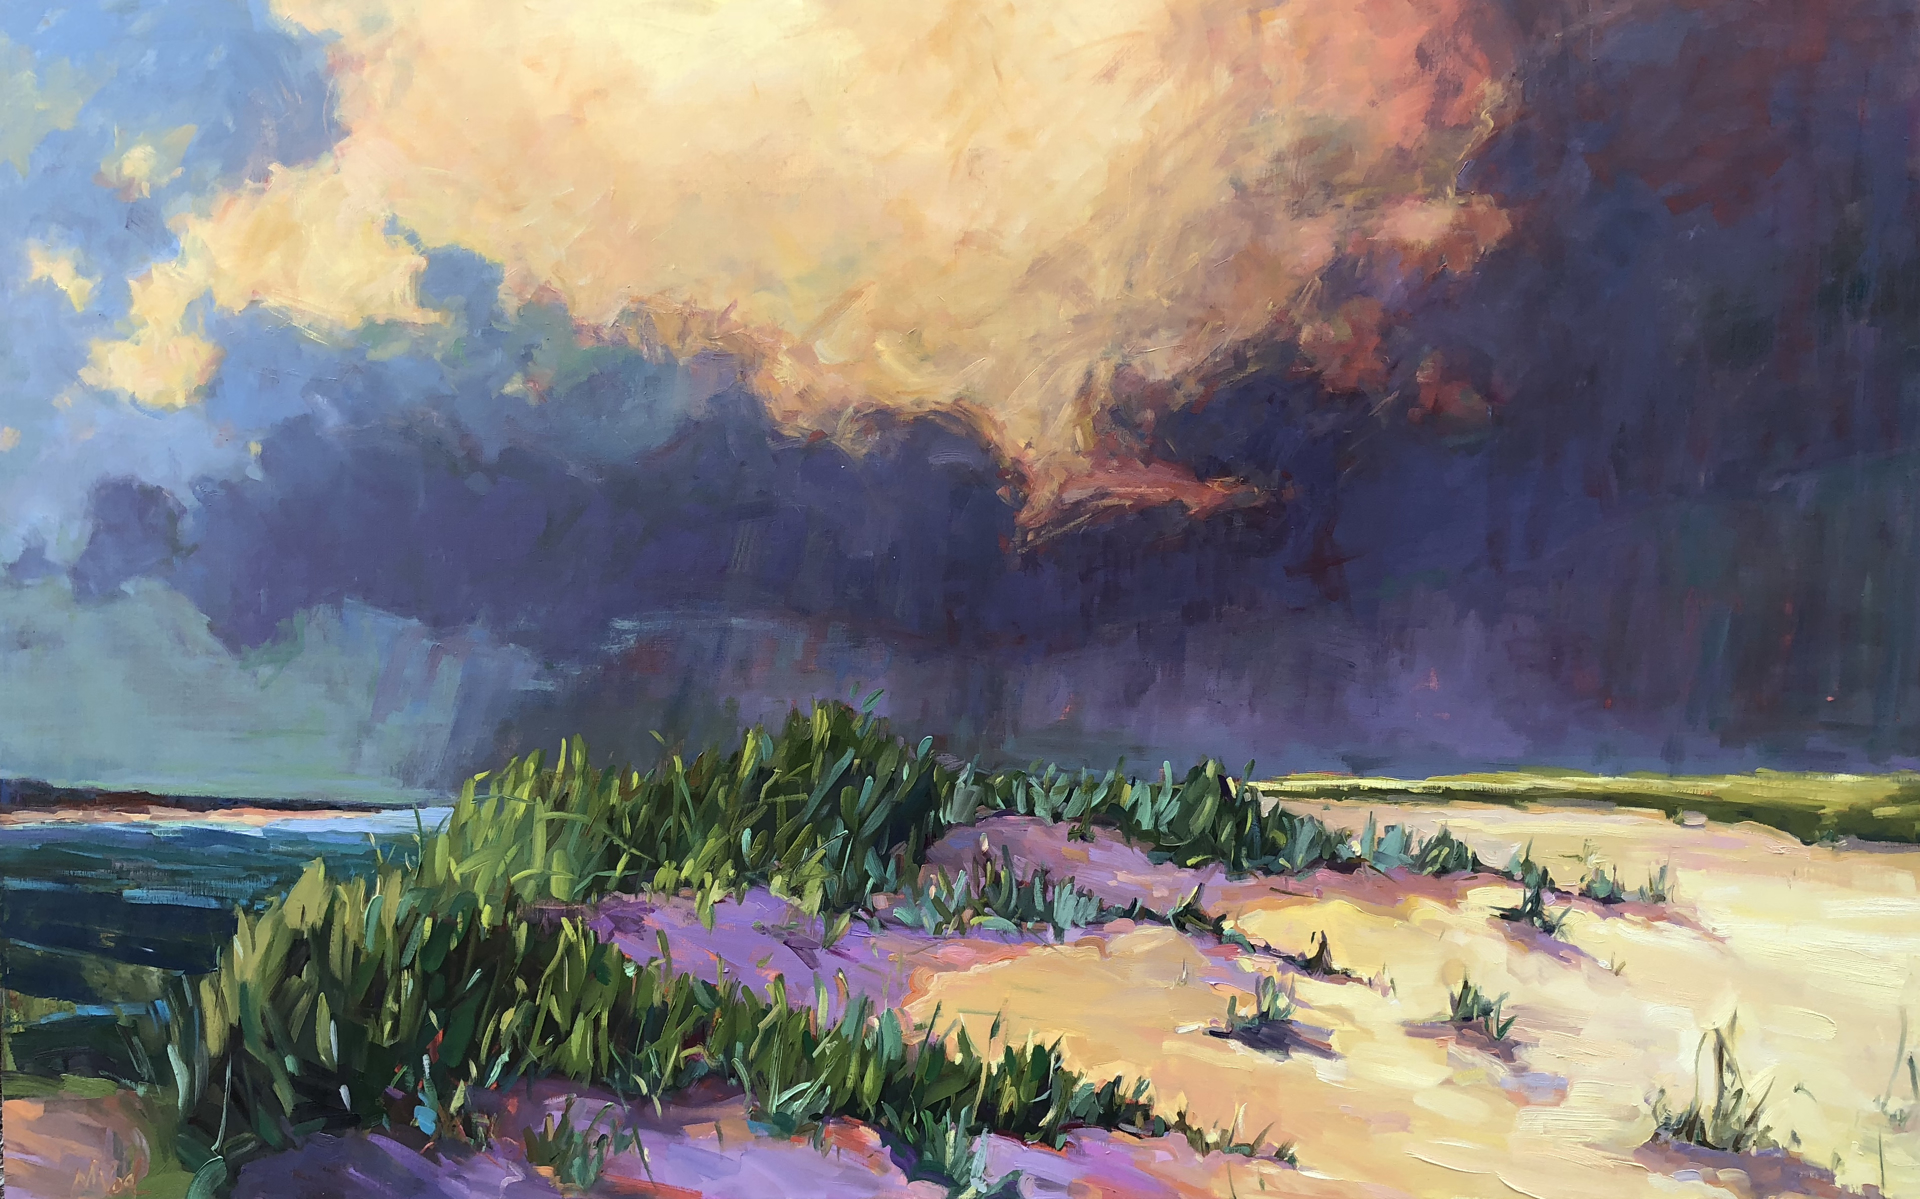 Peace Within The Storm by Marissa Vogl